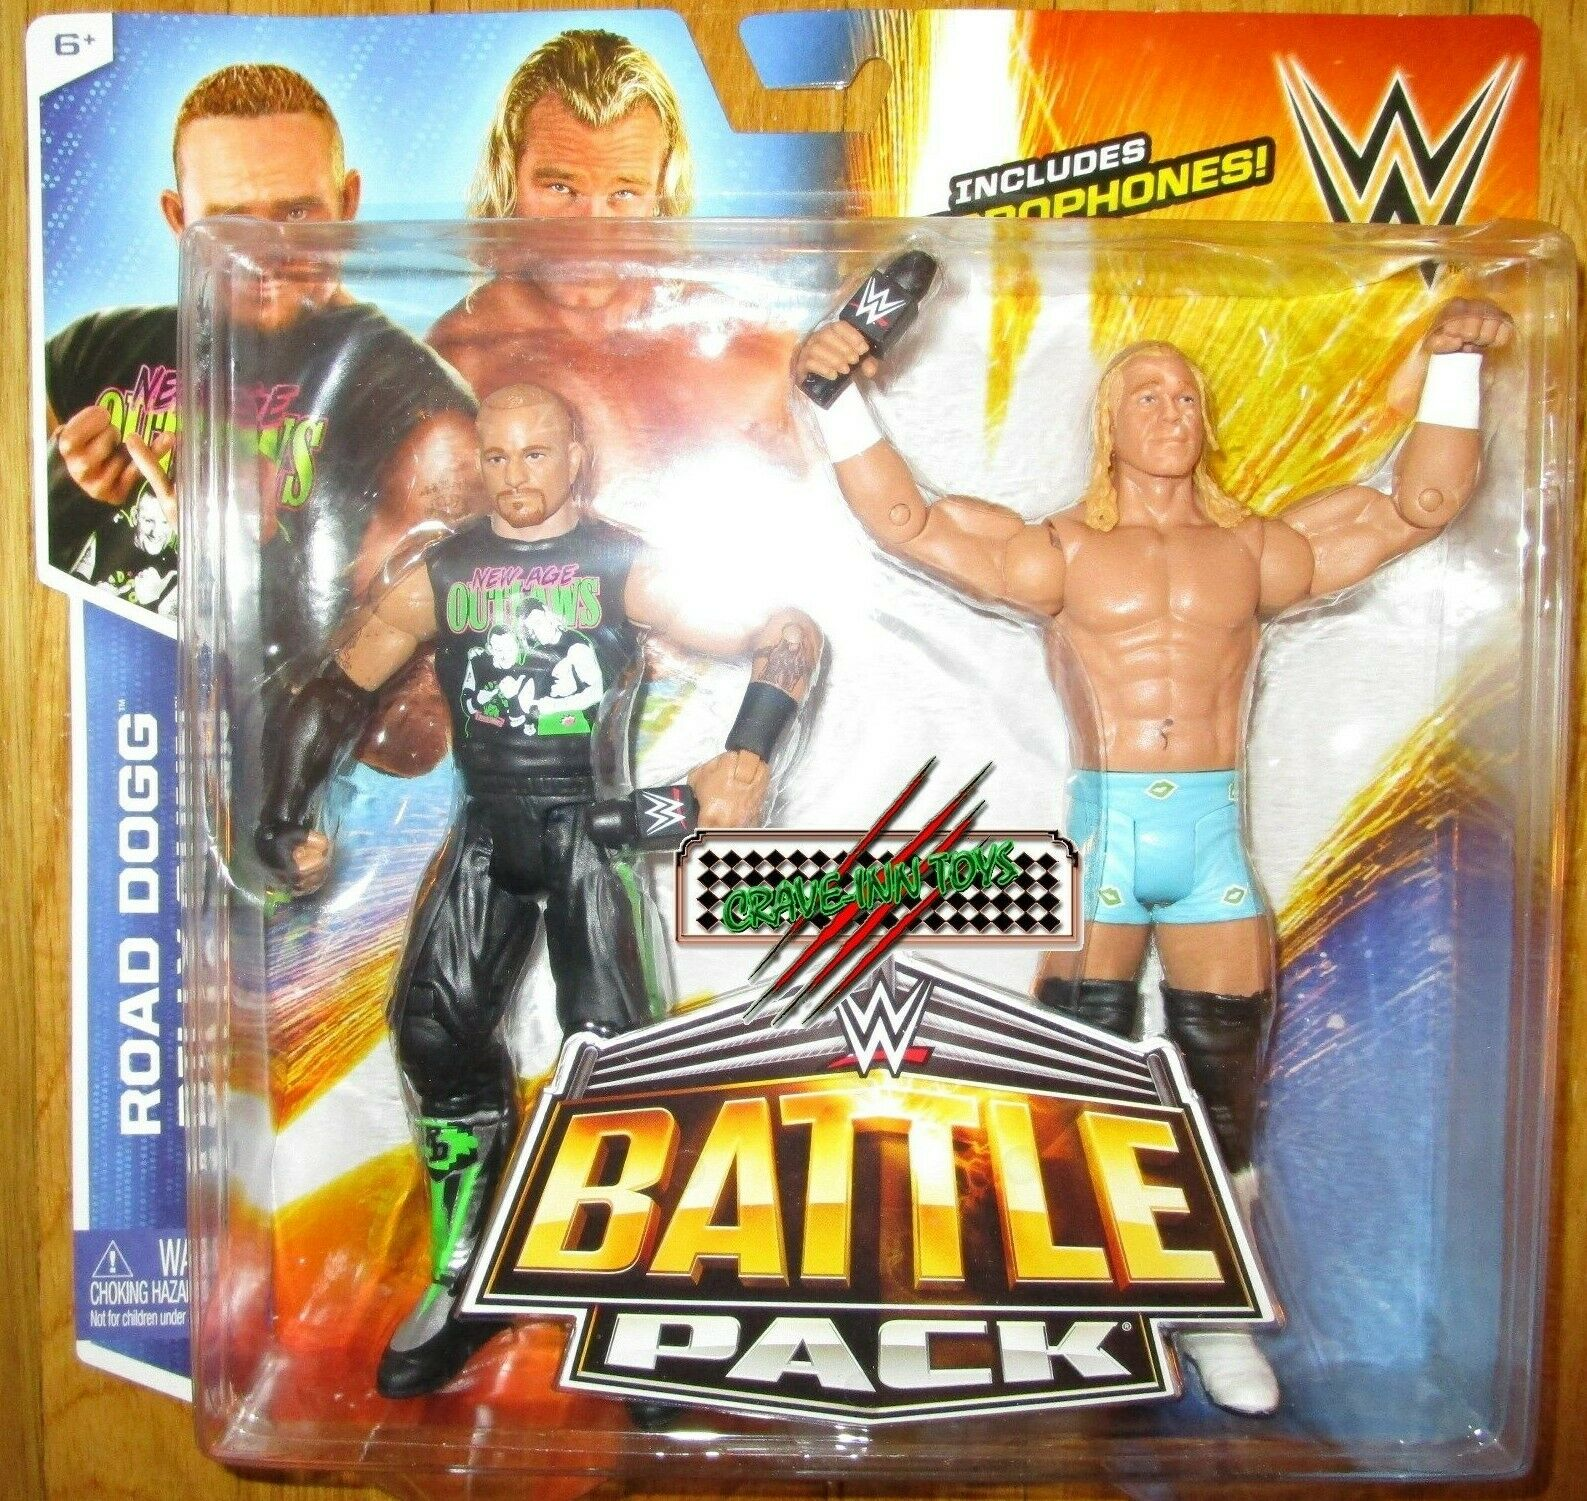 WWE Battle Pack 32 nuovo AGE FUORILEGGE BILLY GUNN & strada DOGG cifra DX